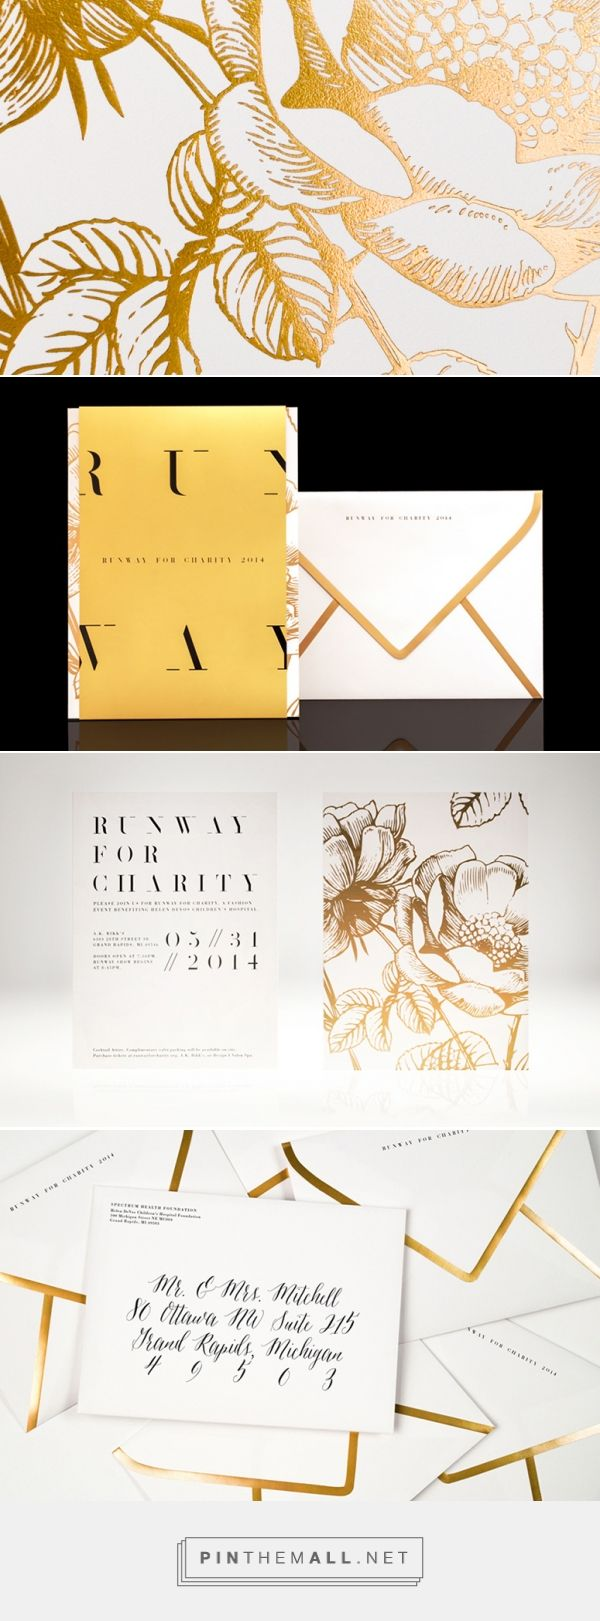 FPO: Runway for Charity Invitation